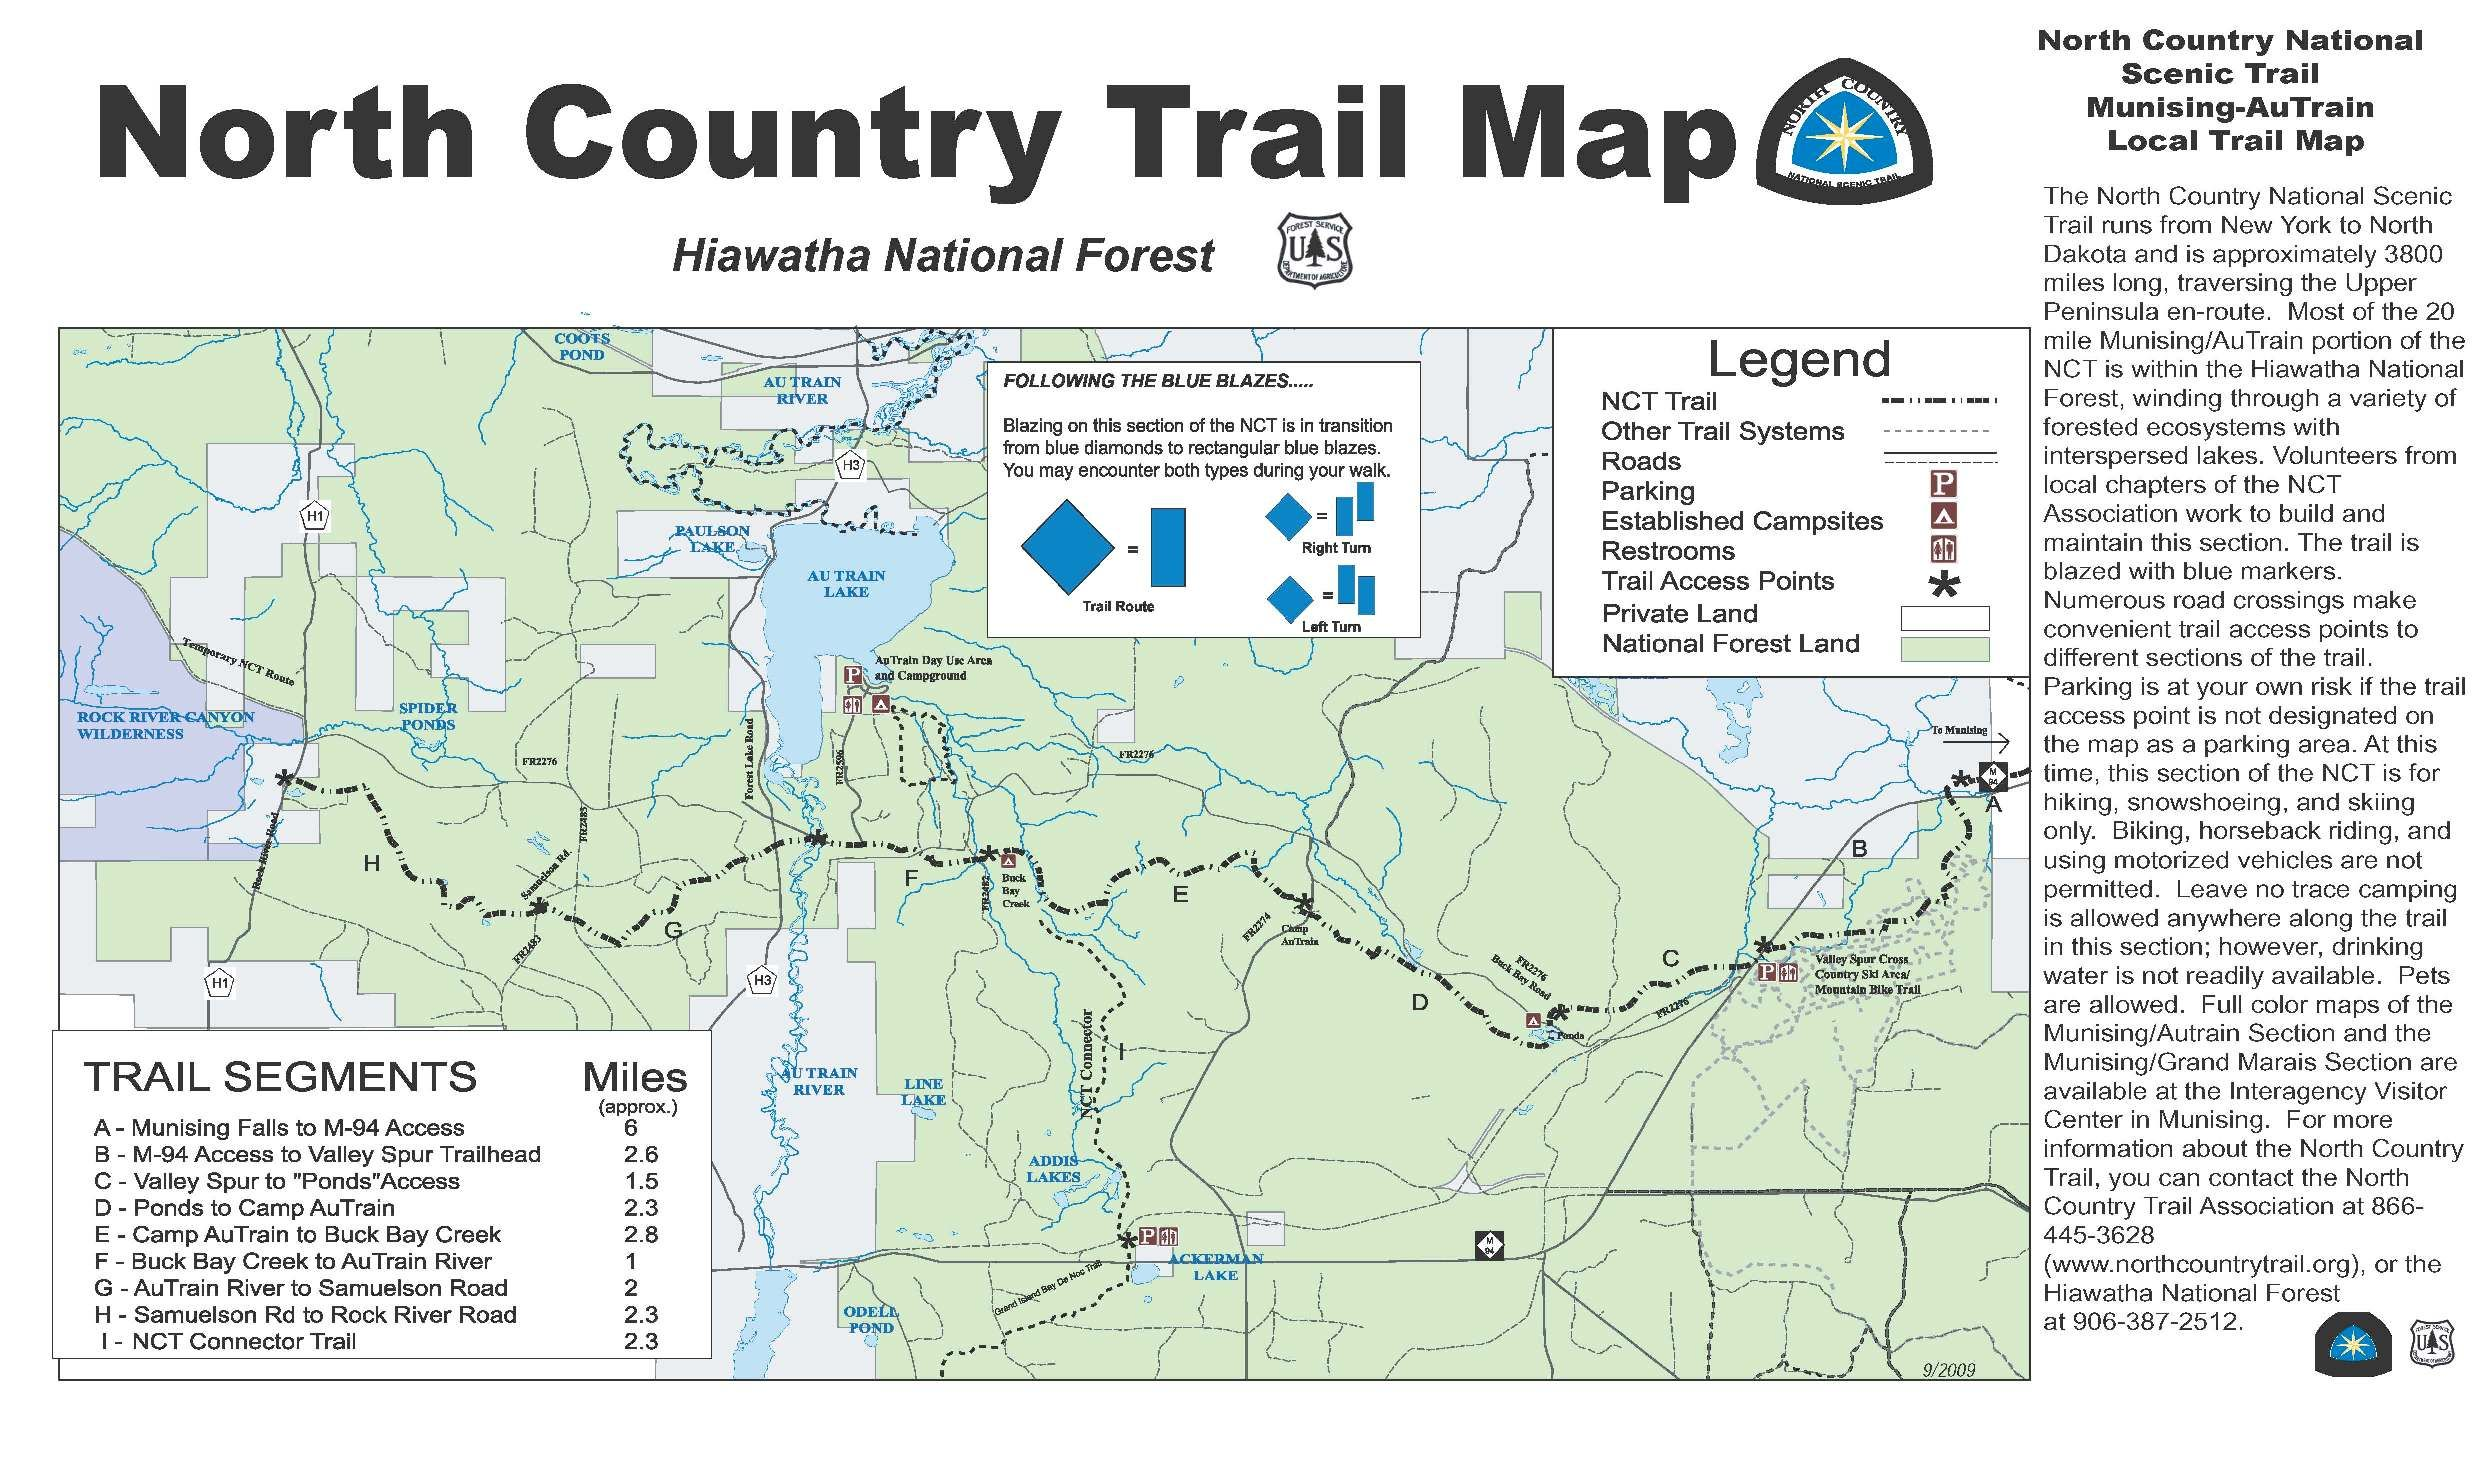 North Country National Scenic Trail Munising